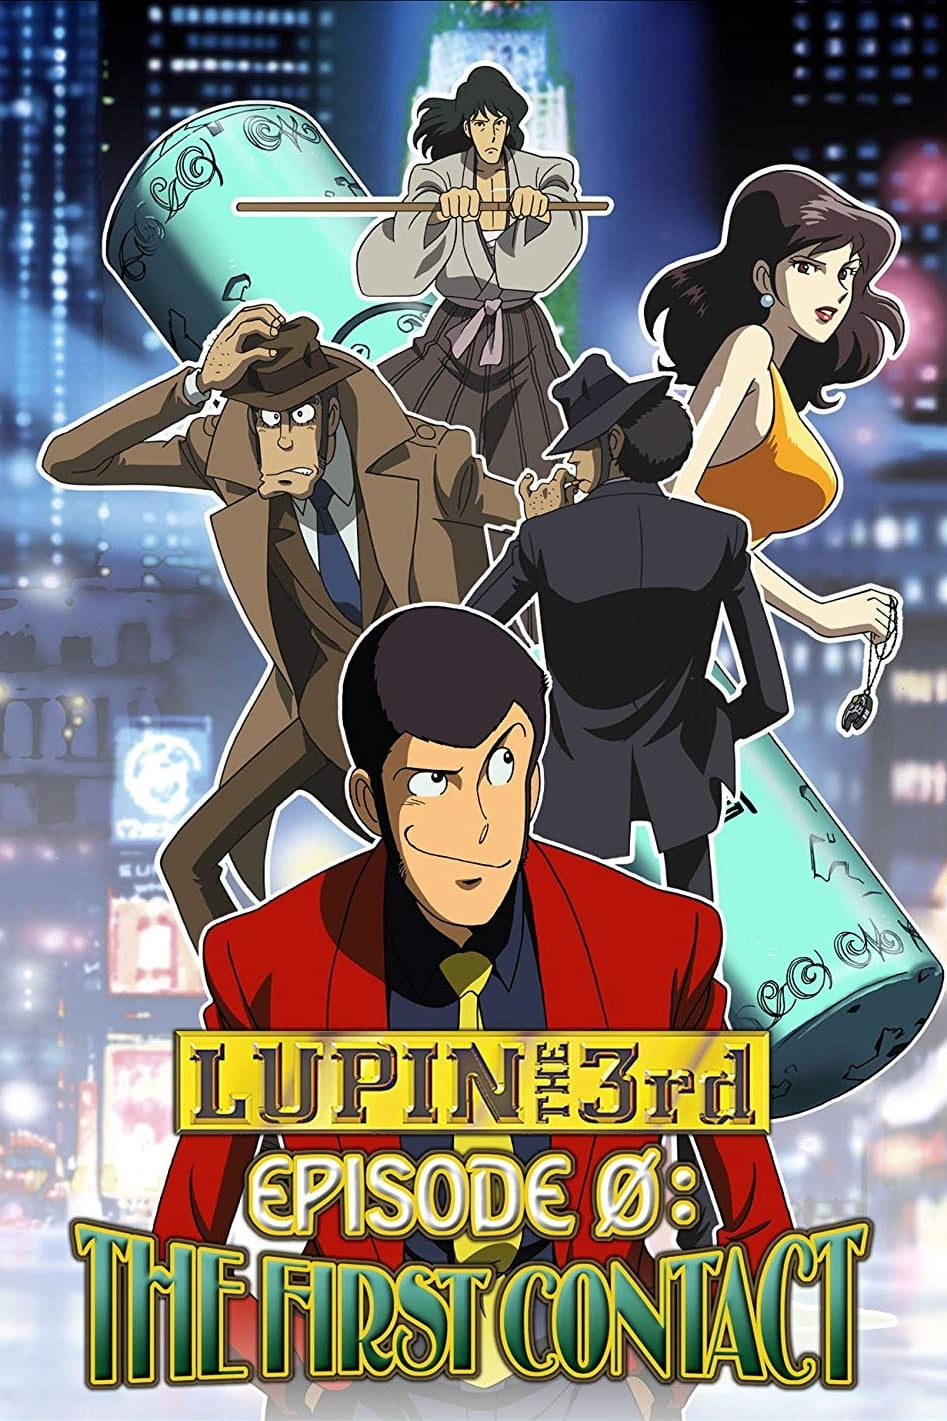 Lupin the Third: Episode 0: First Contact (2002)